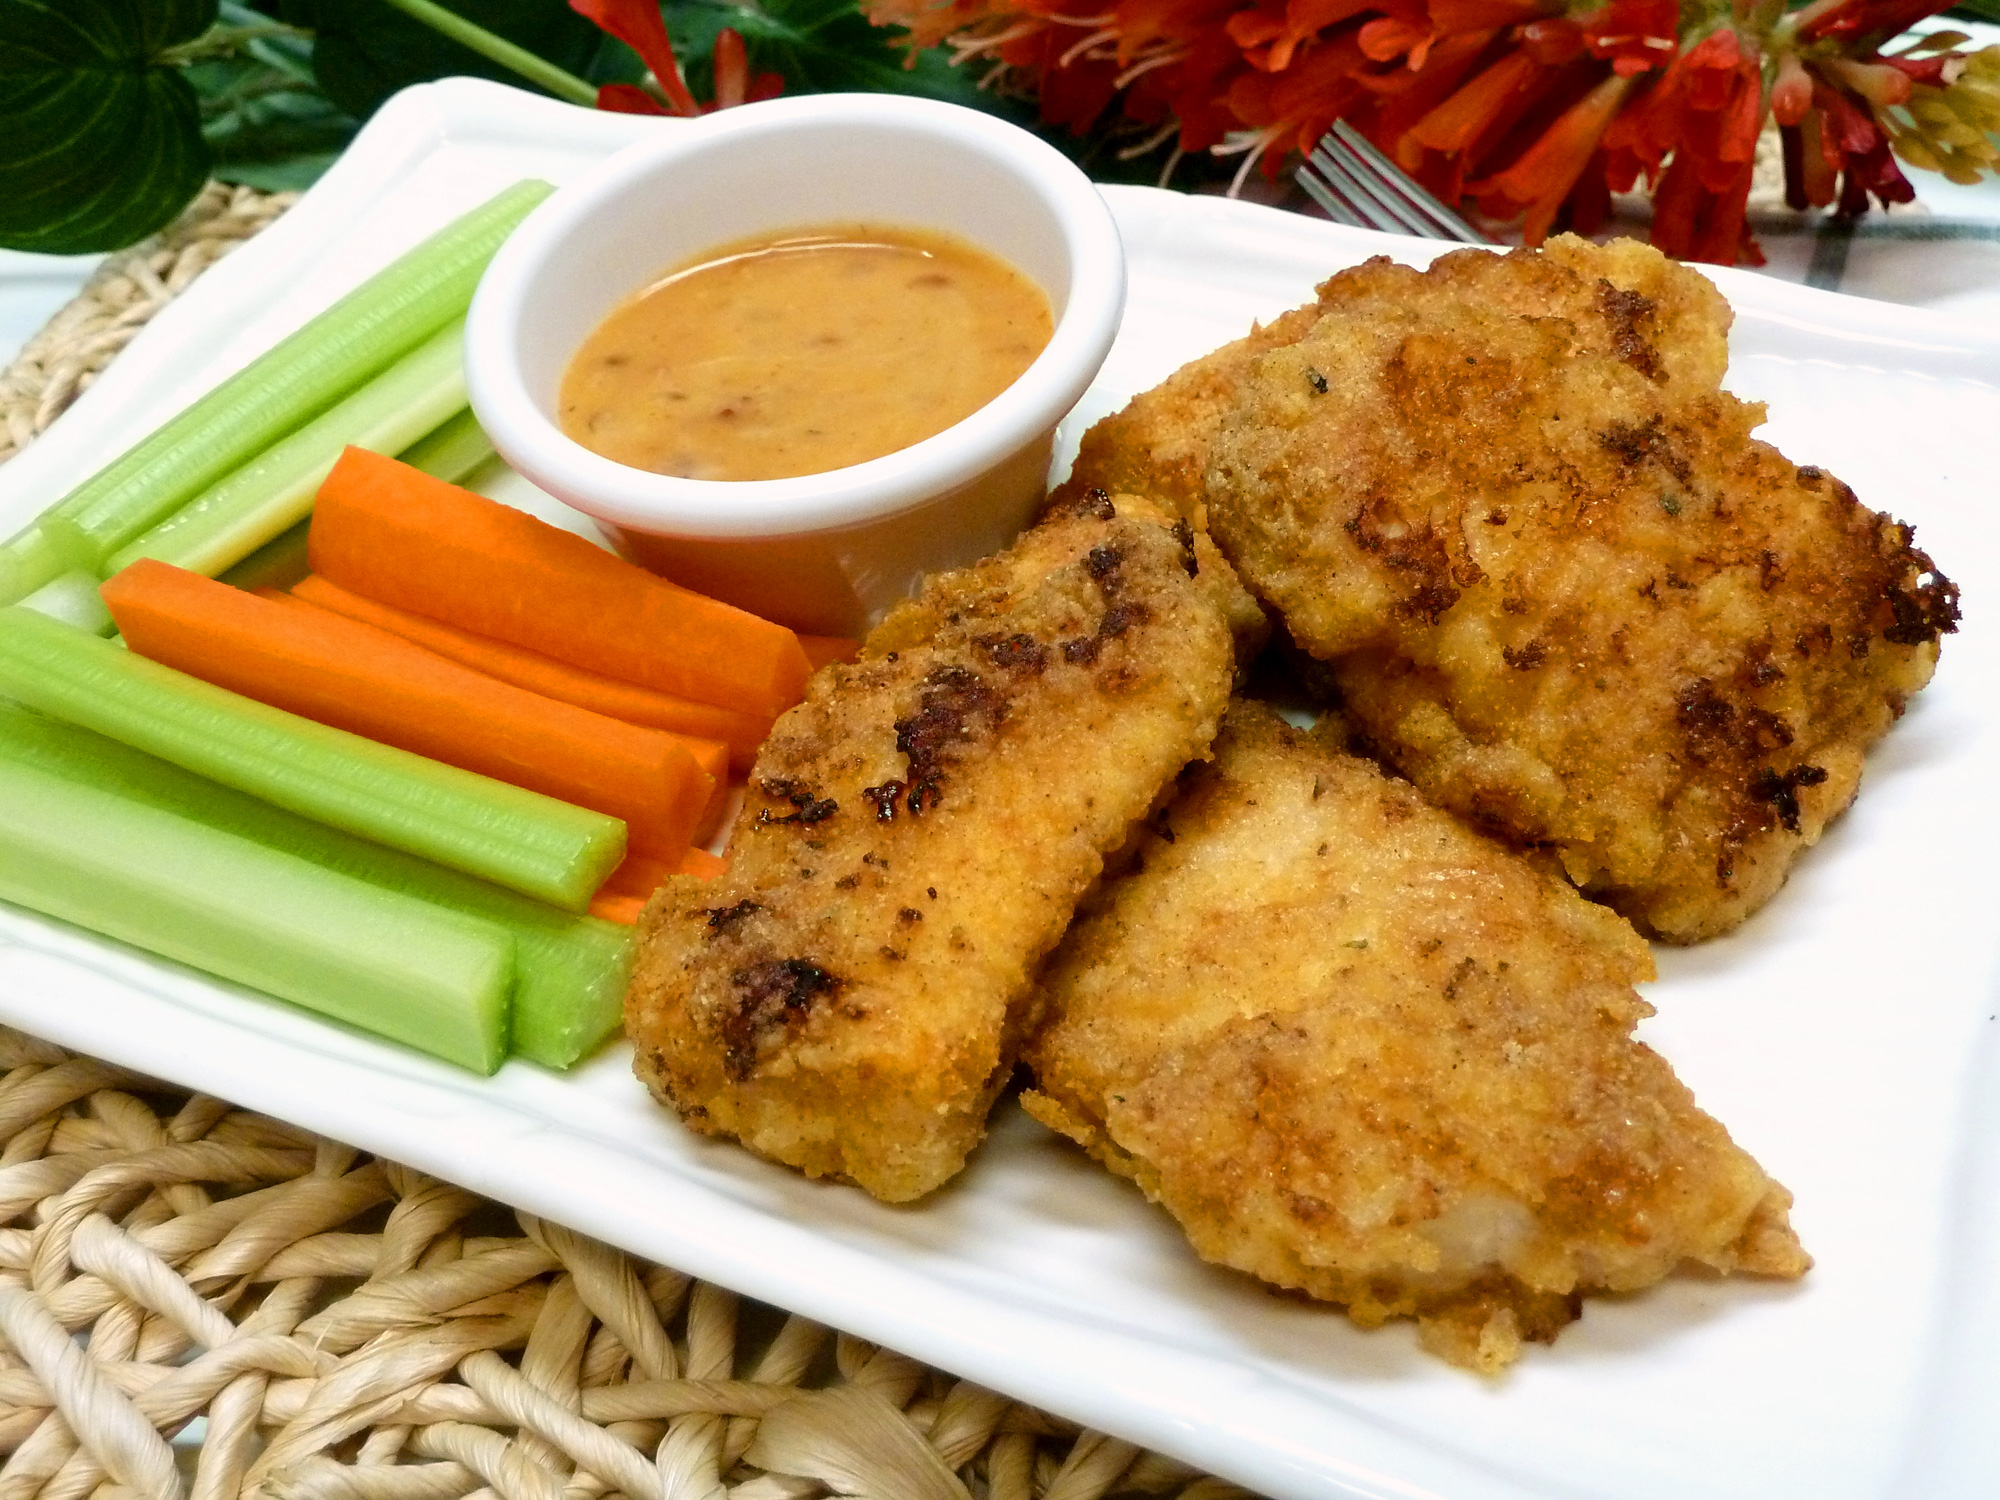 Enjoy delicious baked gluten-free chicken fingers without guilt.